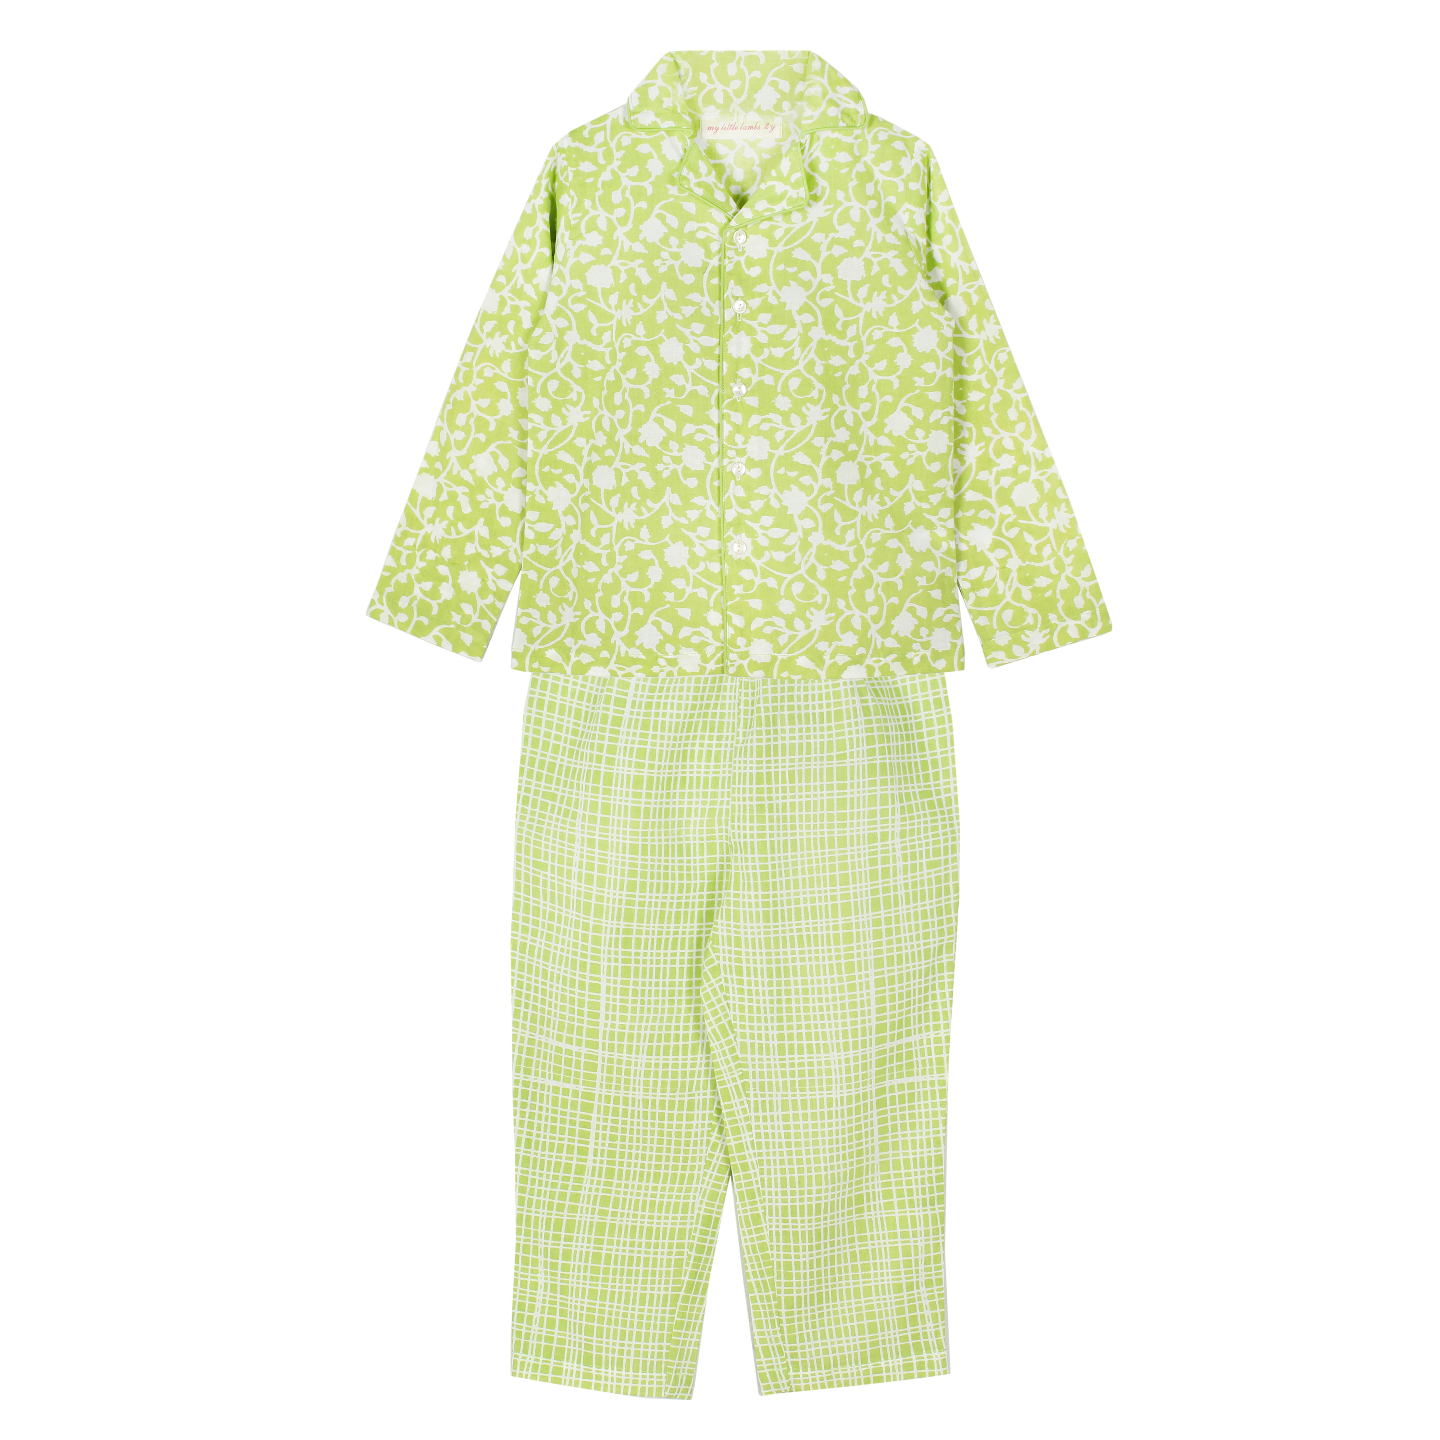 Jasmine Night Suit Green